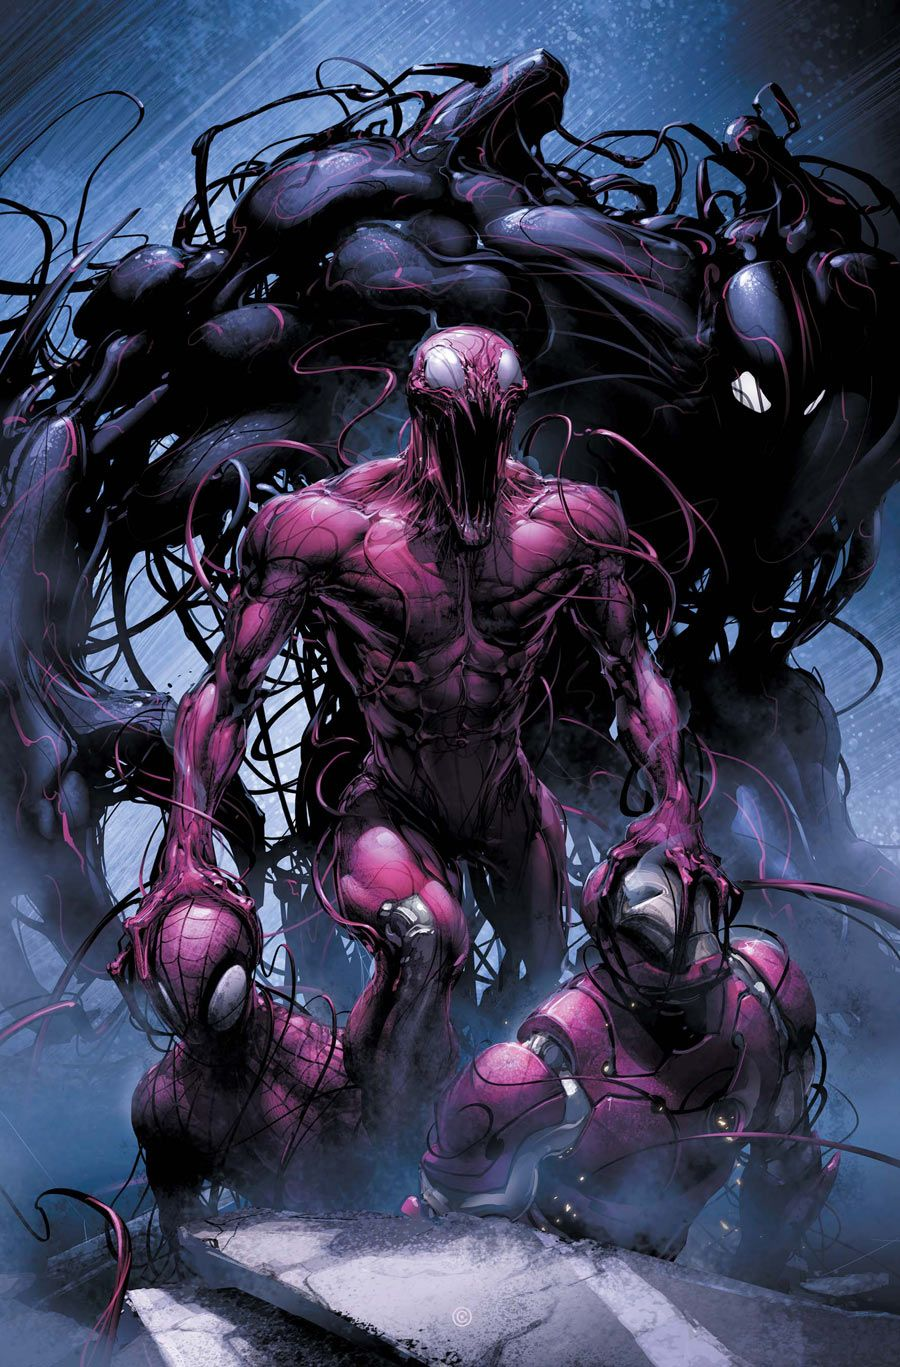 Carnage vs Spiderman and Iron Man